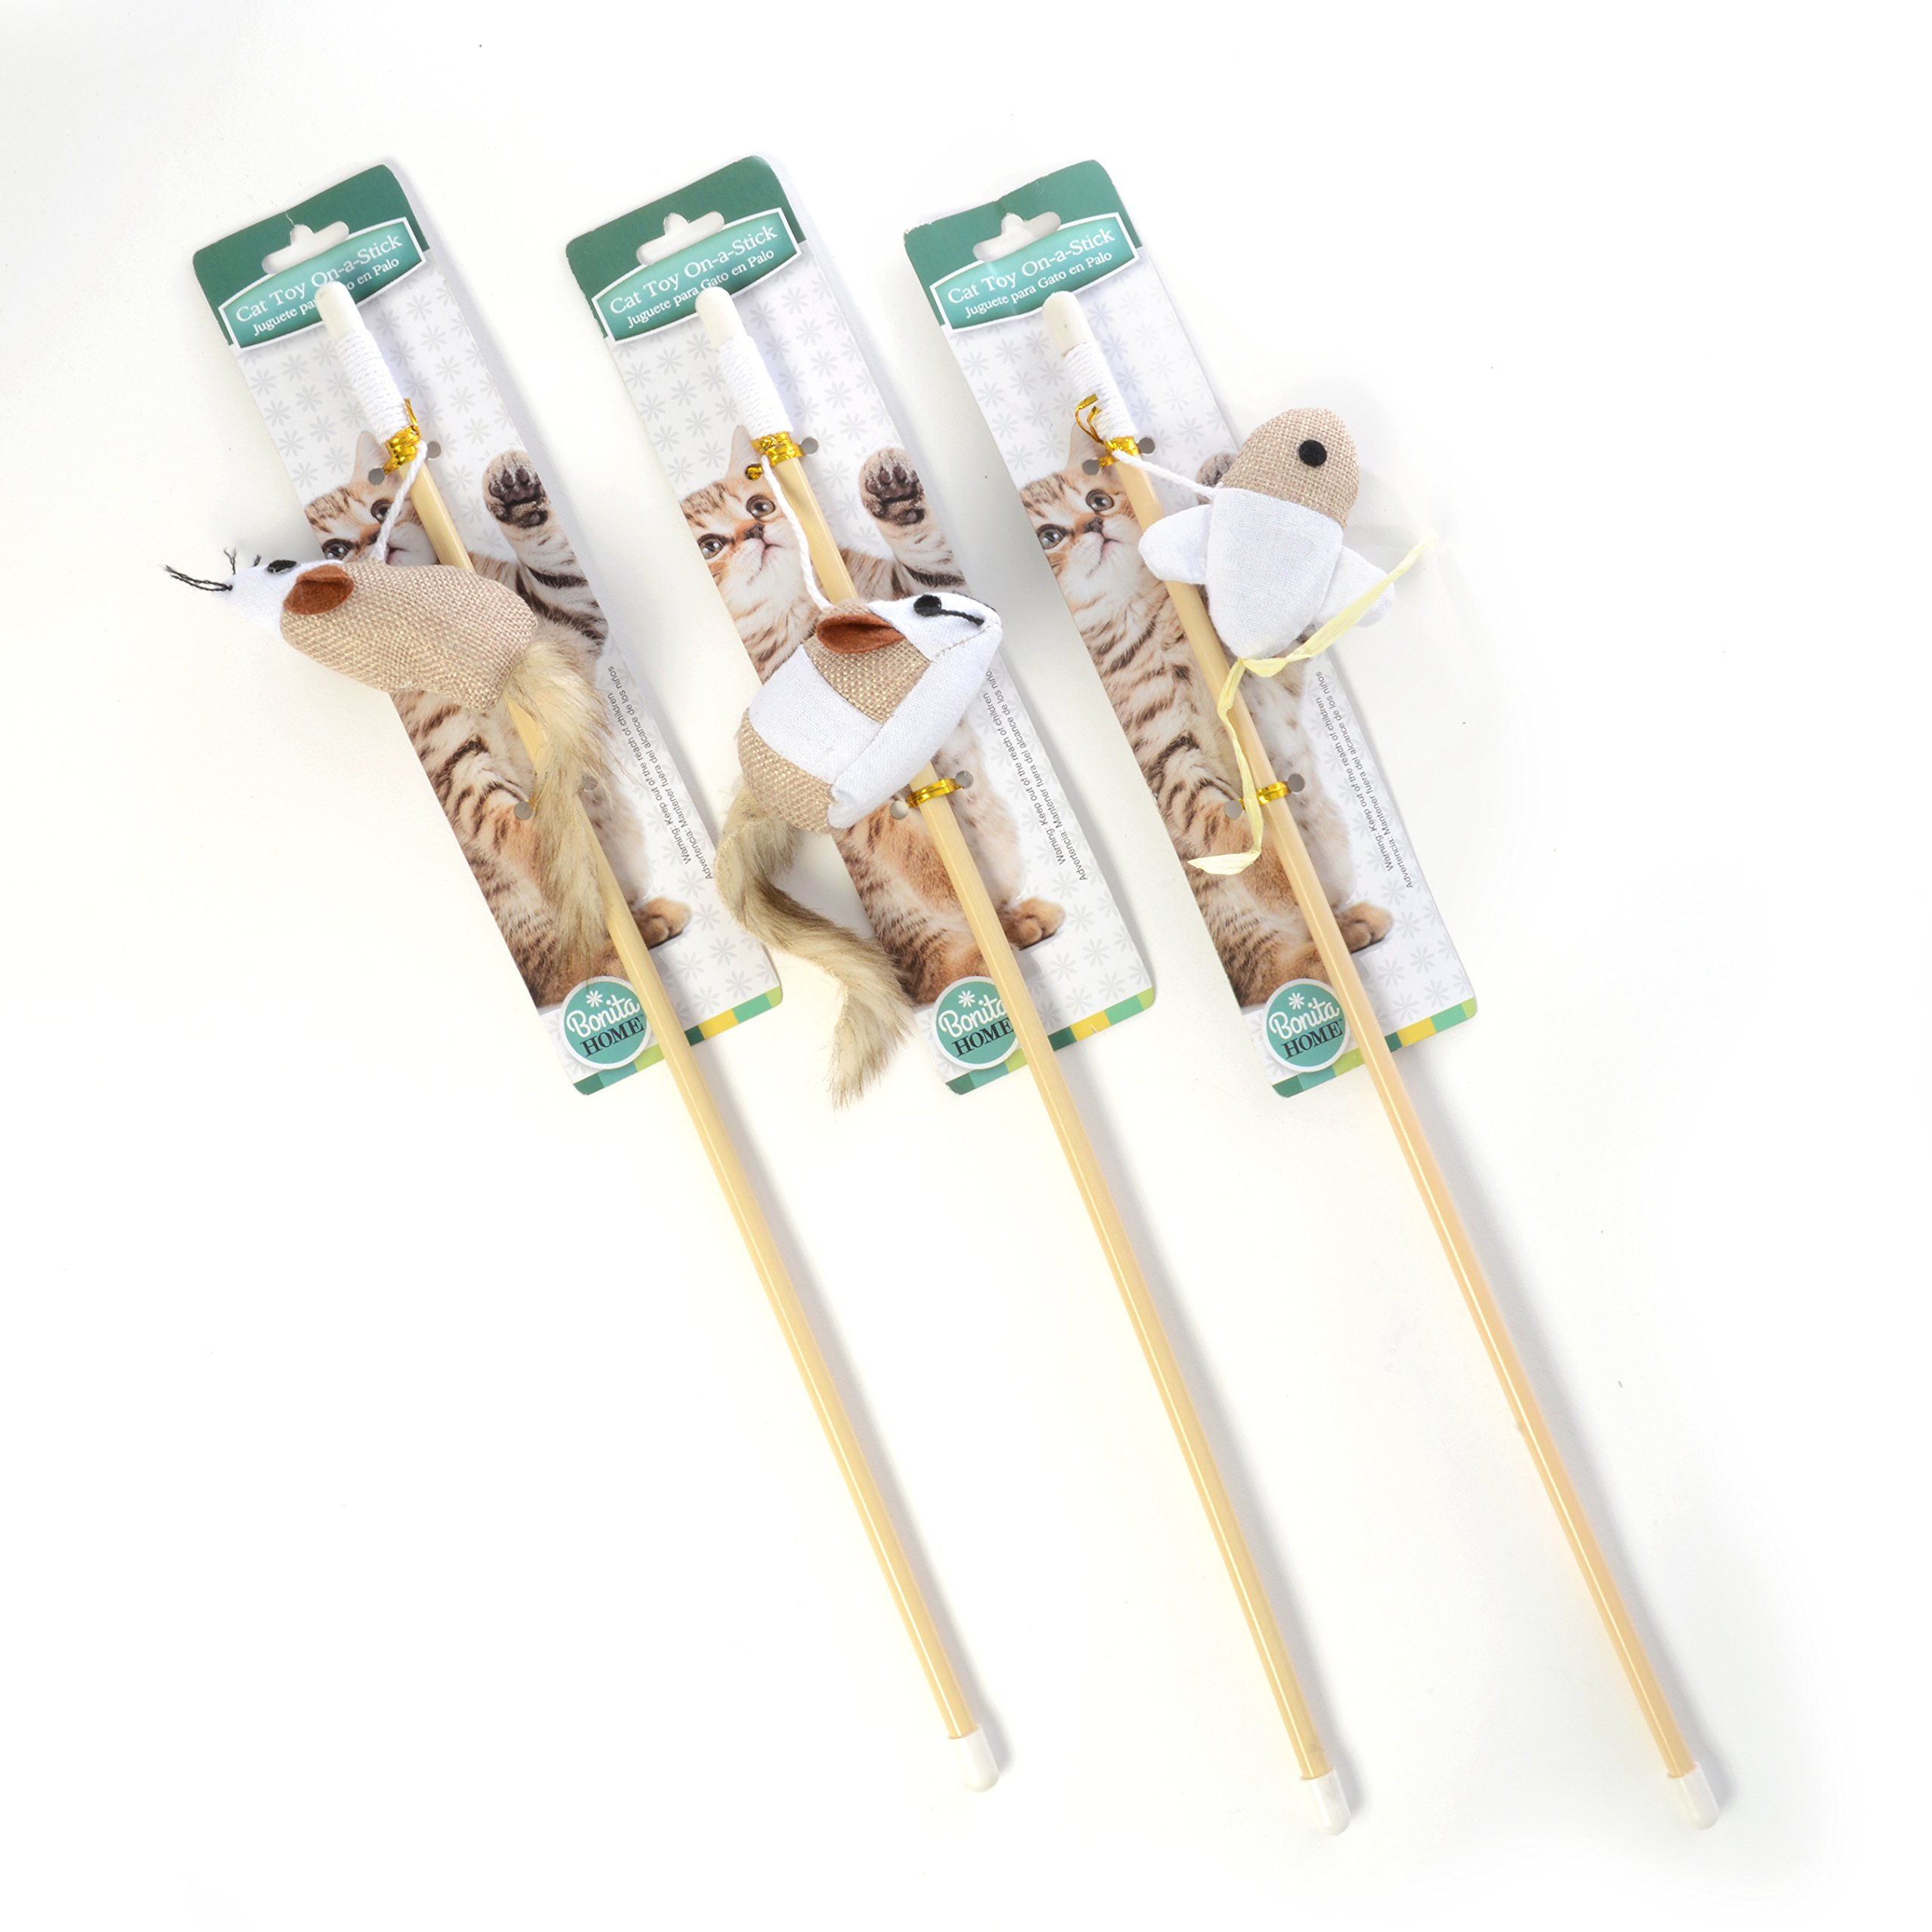 Asst Design Cat Toy On Stick, Case of 48